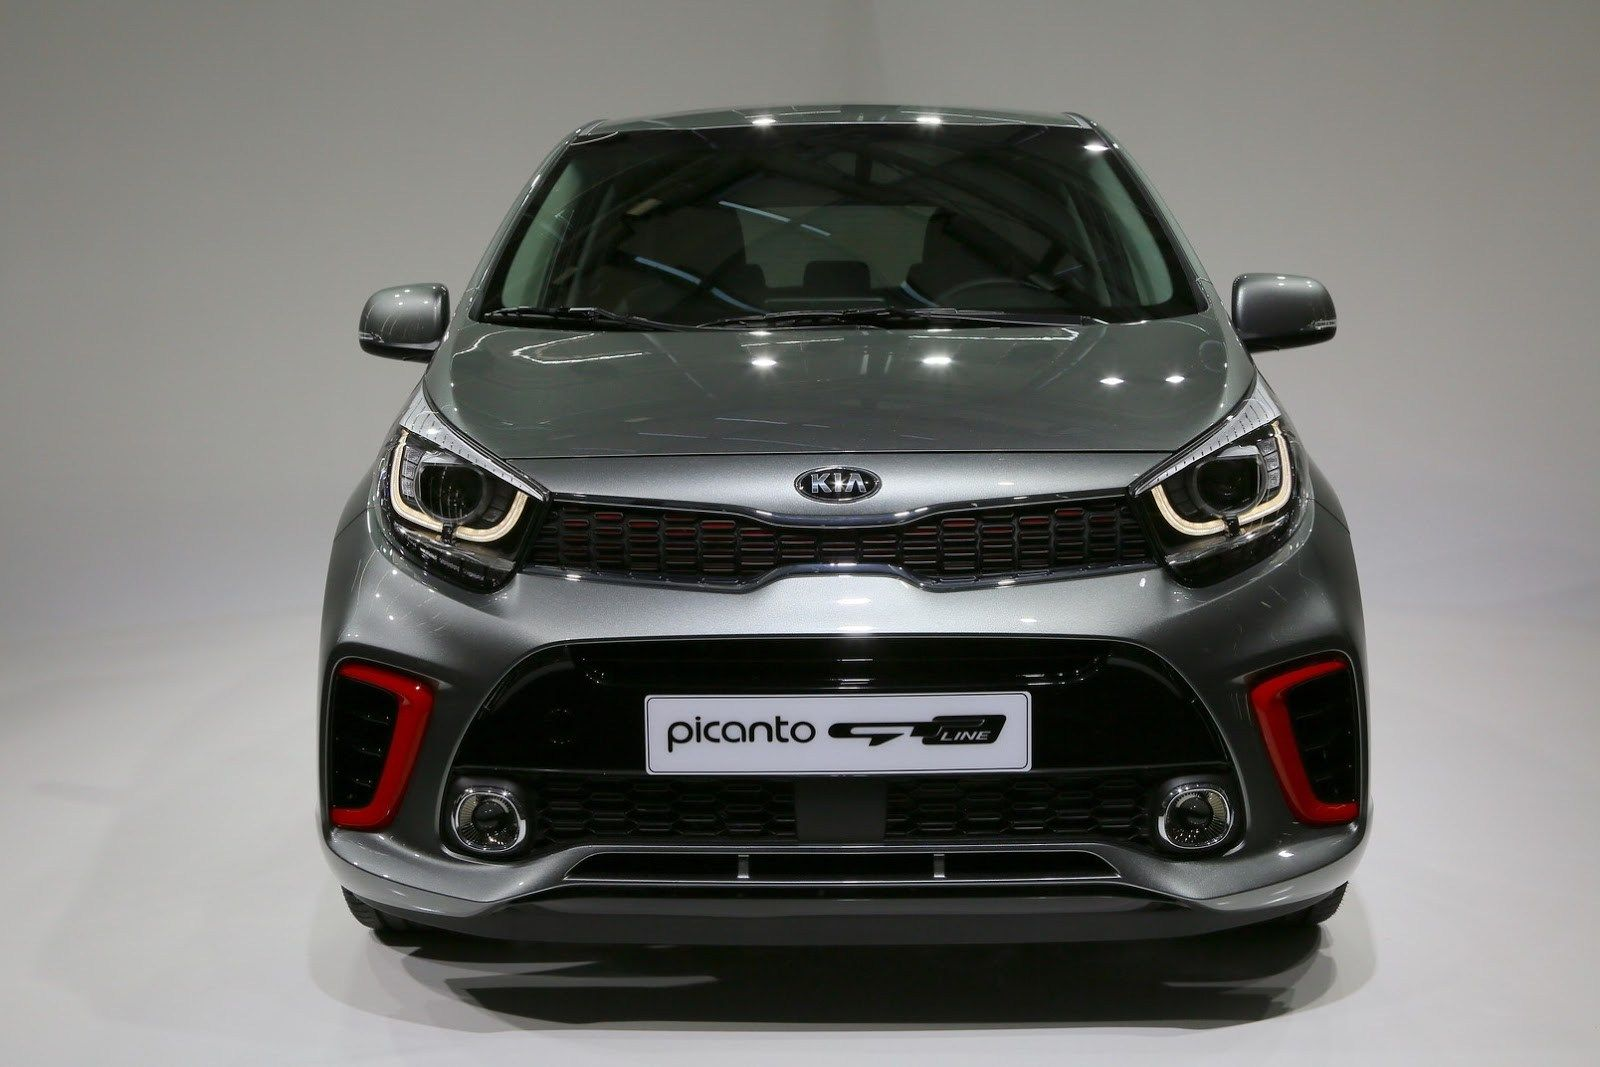 2018 Kia Picanto Next Generation 2019 Cars Review Inside 2018 Kia